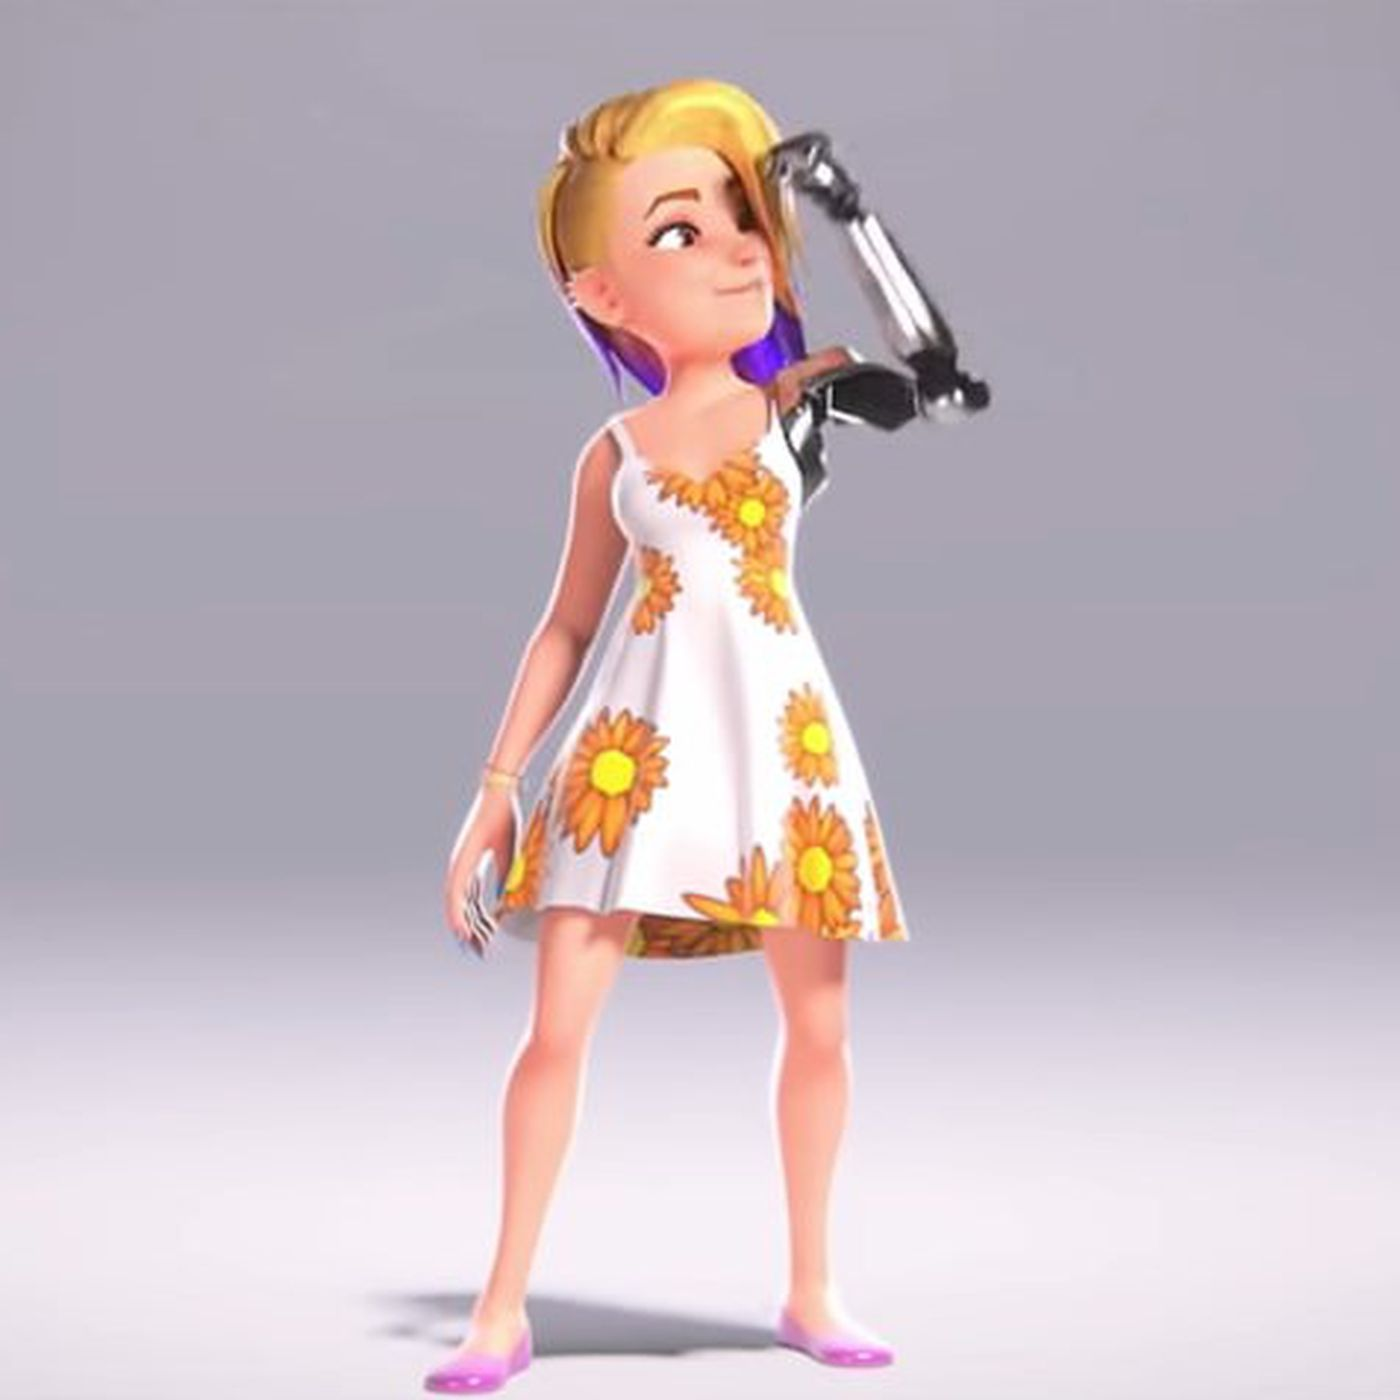 Microsoft's diverse new Xbox Live avatars will launch in